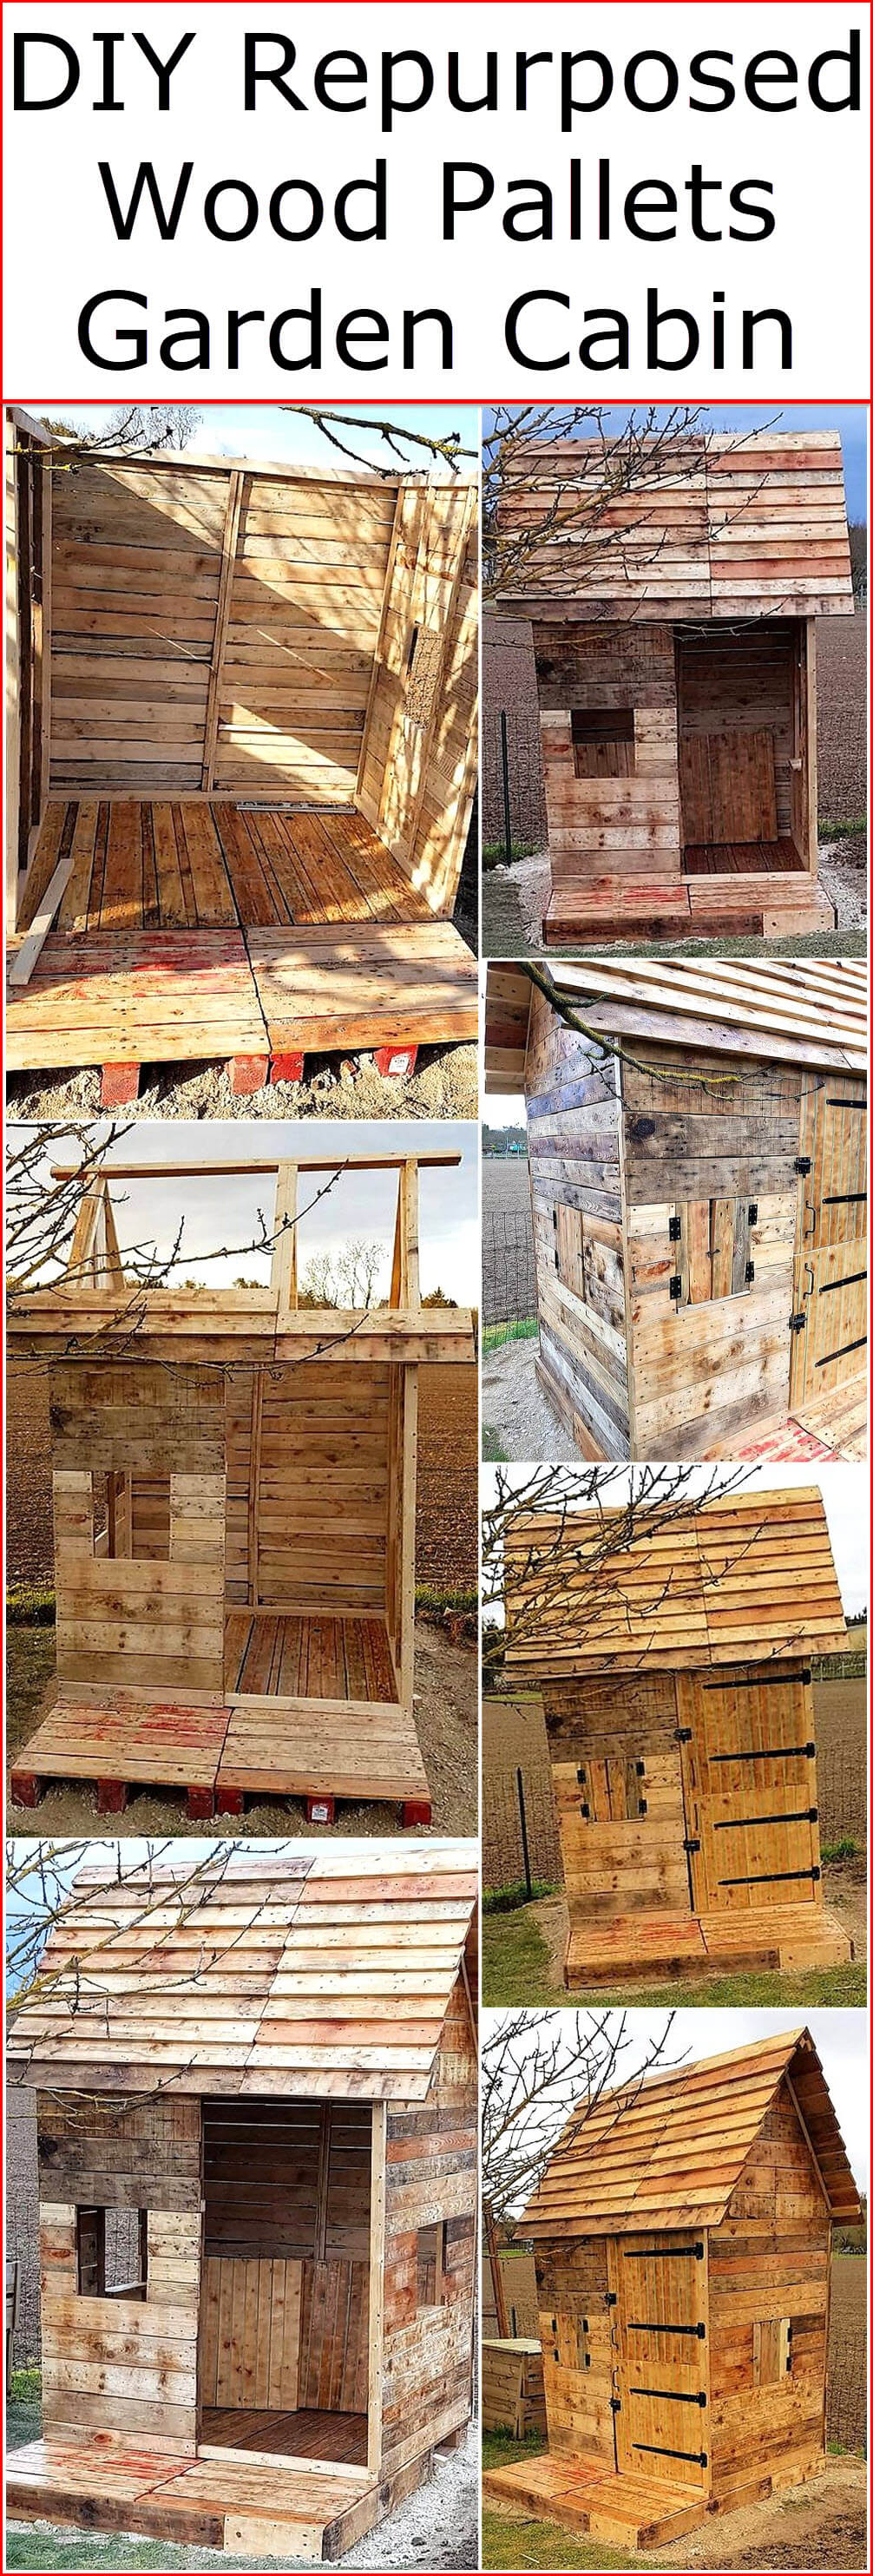 DIY Repurposed Wood Pallets Garden Cabin